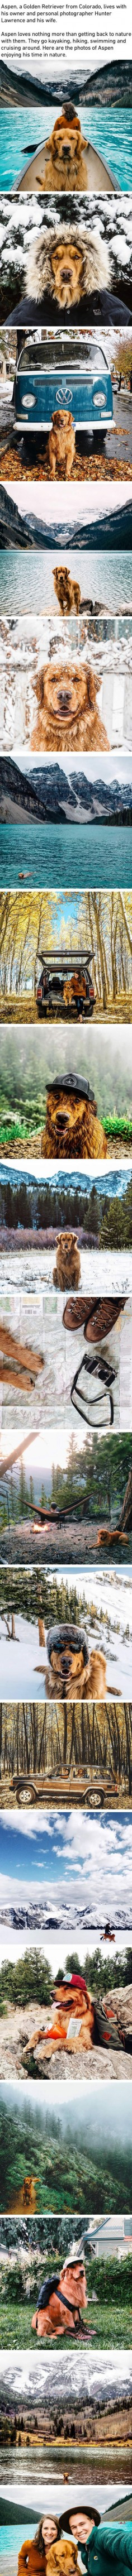 Aspen The Golden Retriever Loves Going On Adventures With His Humans